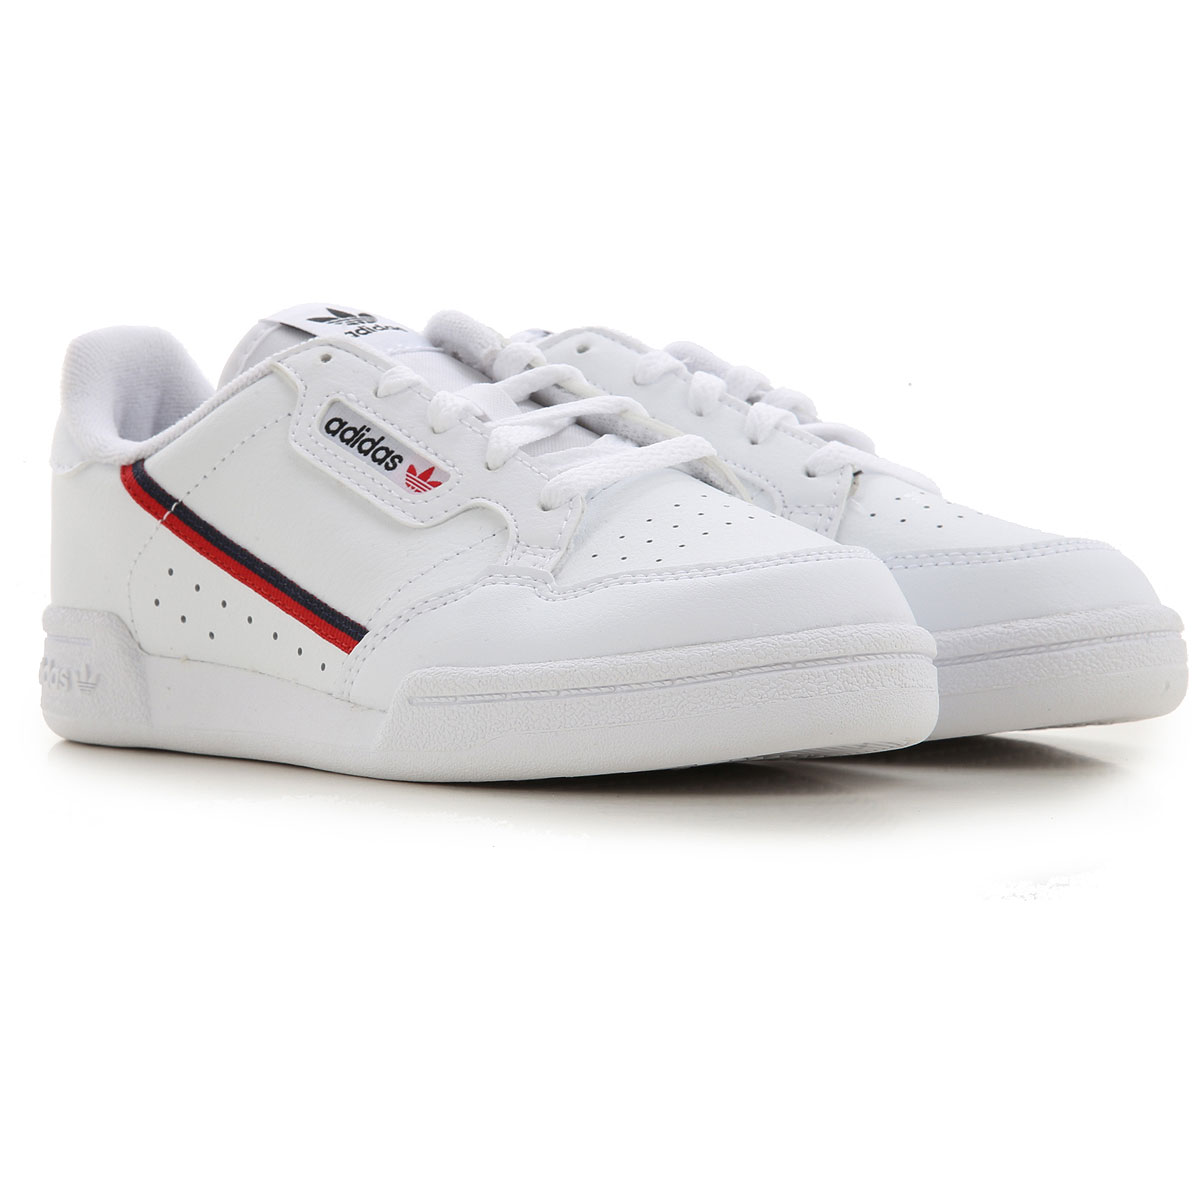 Adidas Kids Shoes for Boys On Sale, White, Leather, 2019, 29